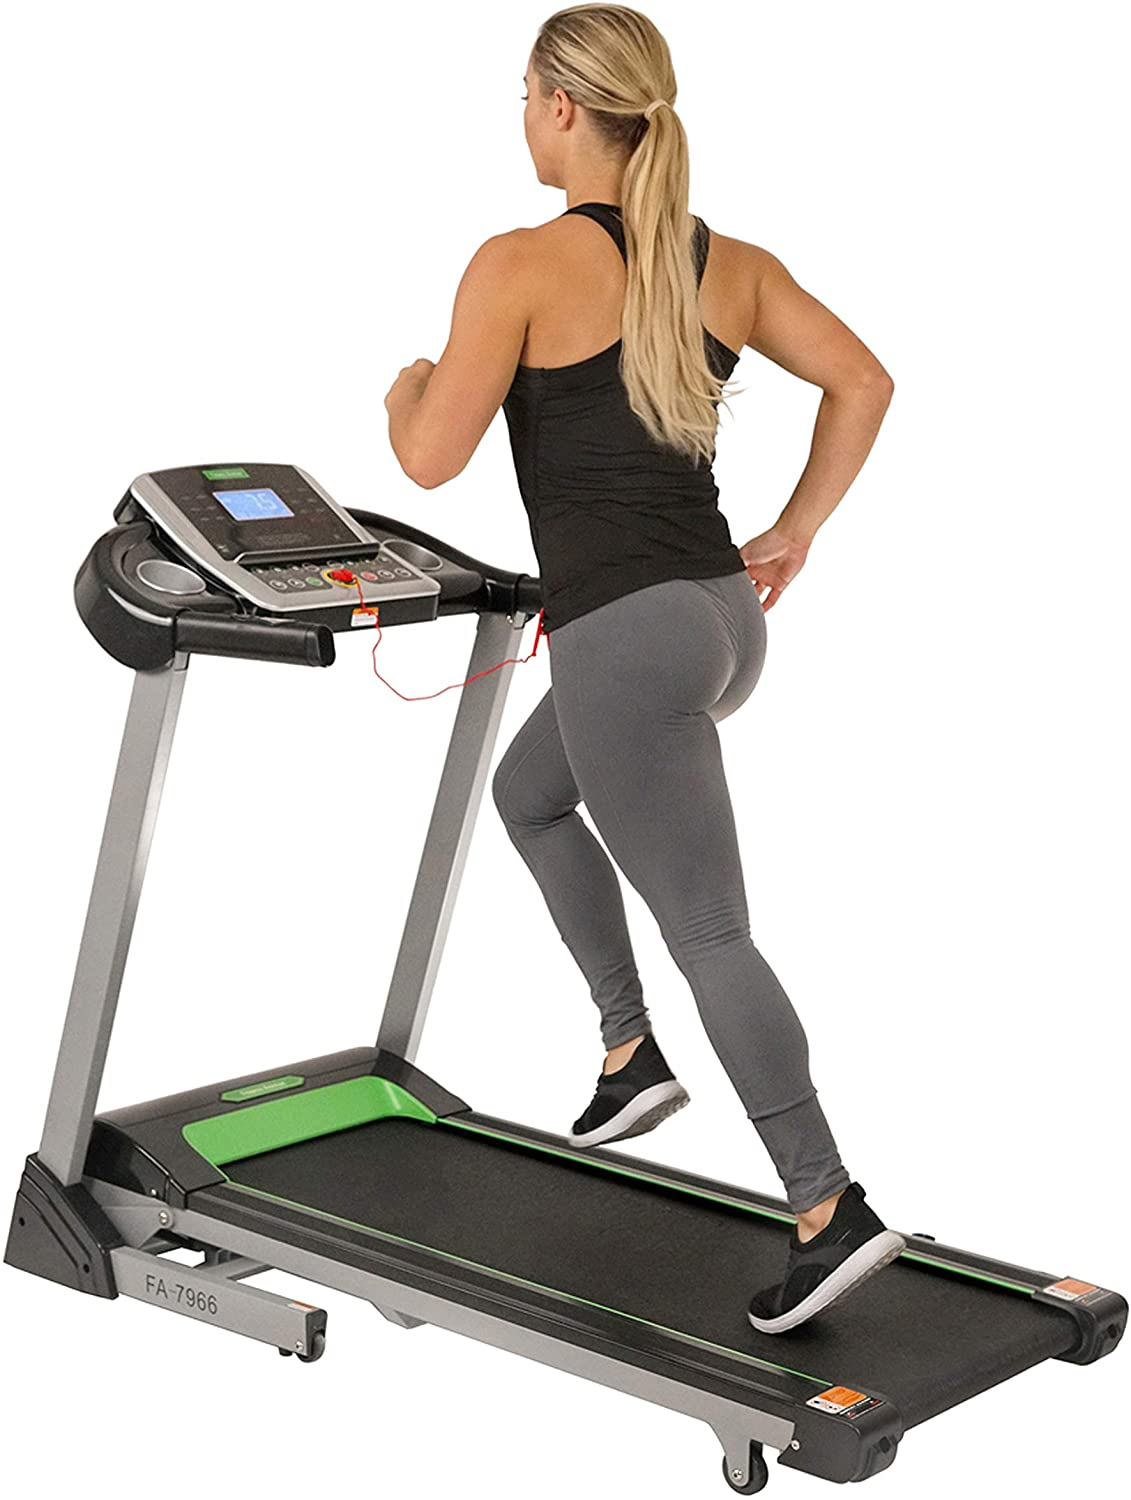 Fitness Avenue Treadmill with Incline and Bluetooth Speakers by Sunny Health & Fitness